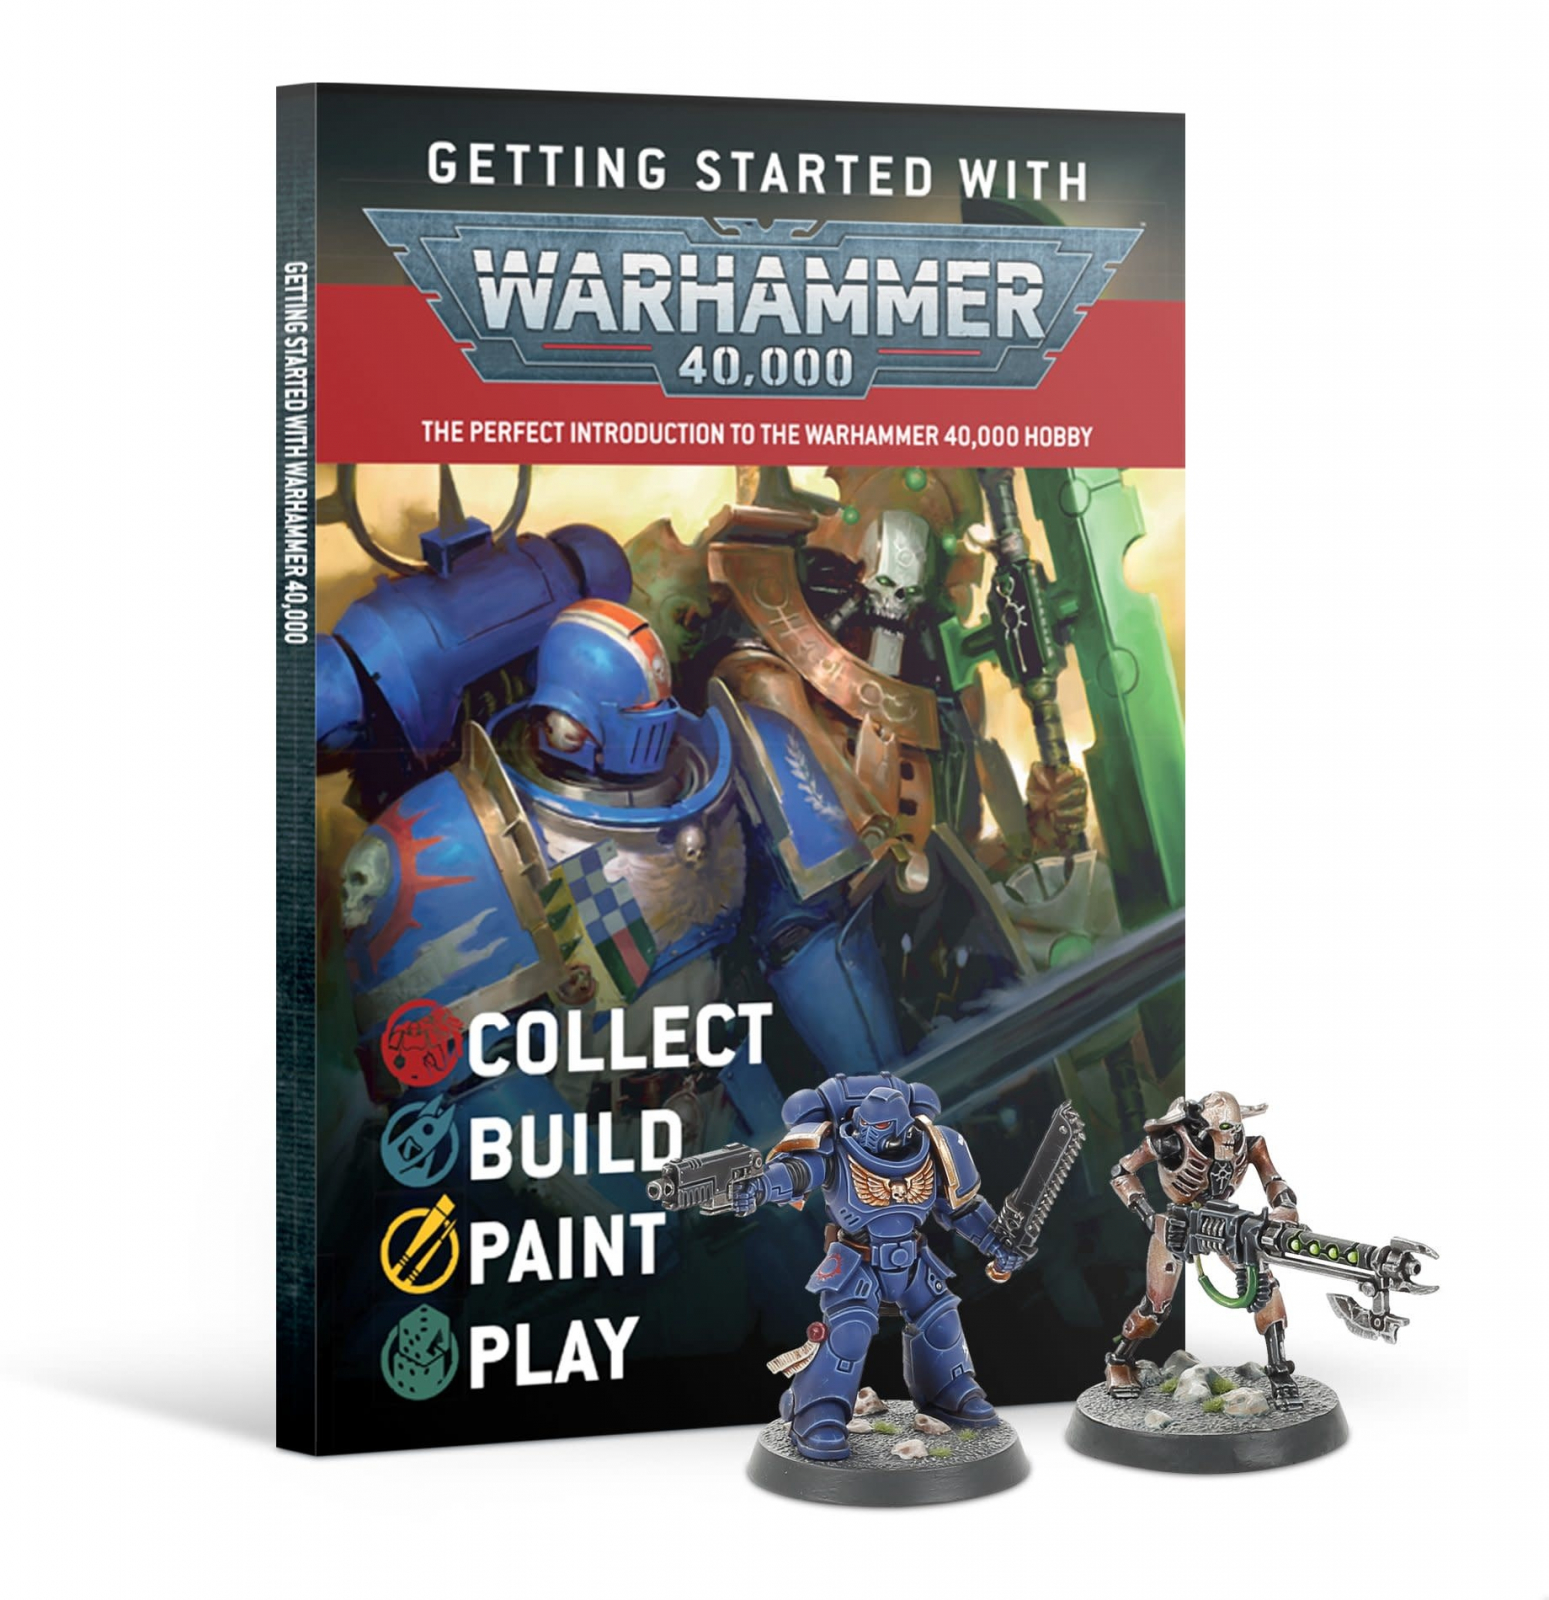 Getting Started With Warhammer 40k (New)